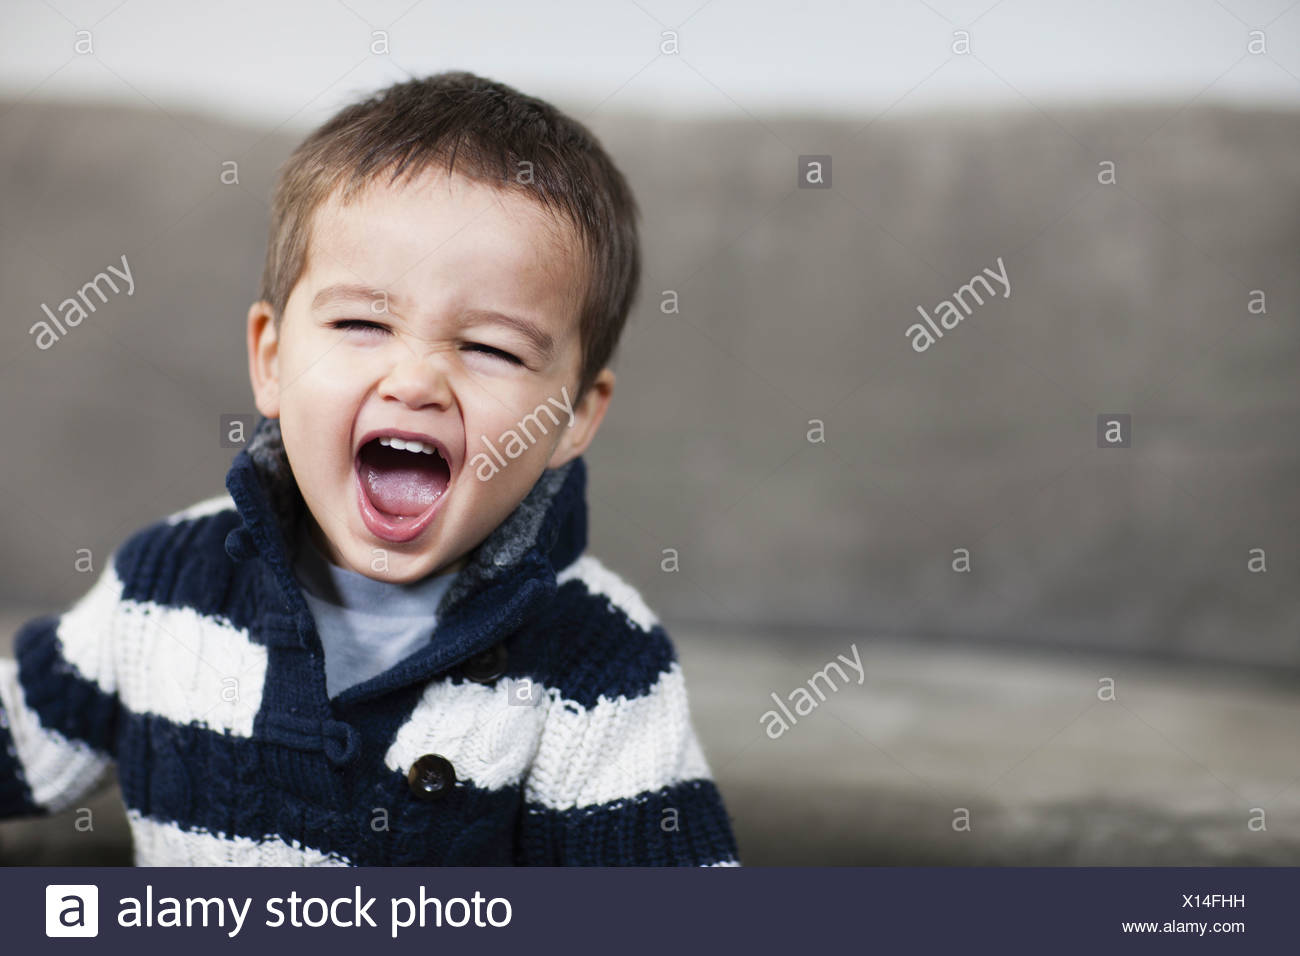 A boy in a striped shirt opening his mouth wide  Pennsylvania USA - Stock Image